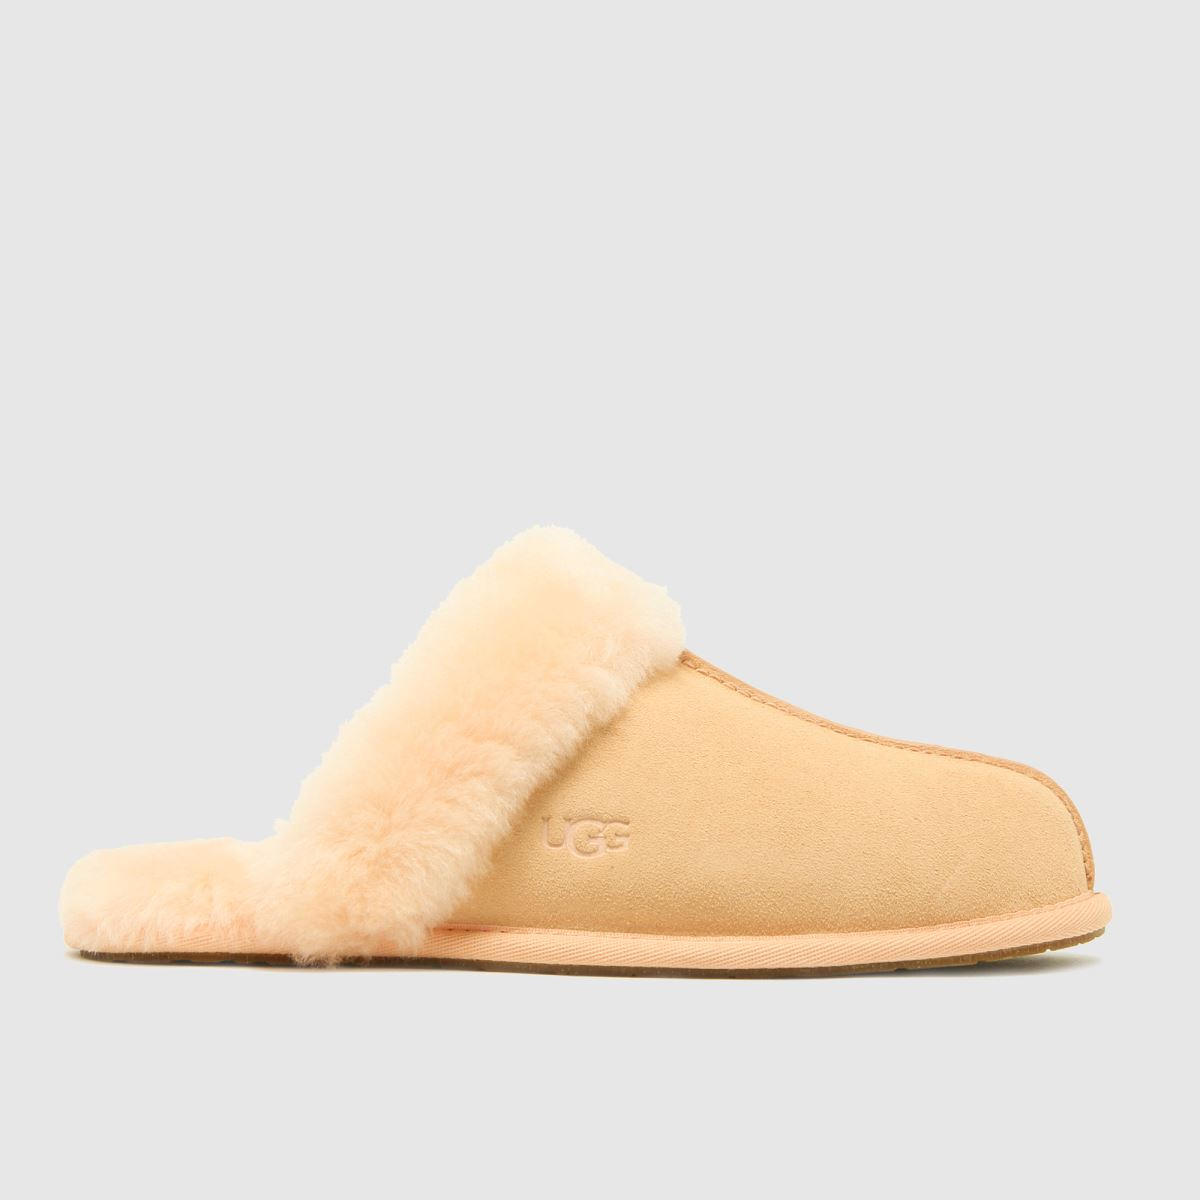 UGG Peach Scuffette Slippers